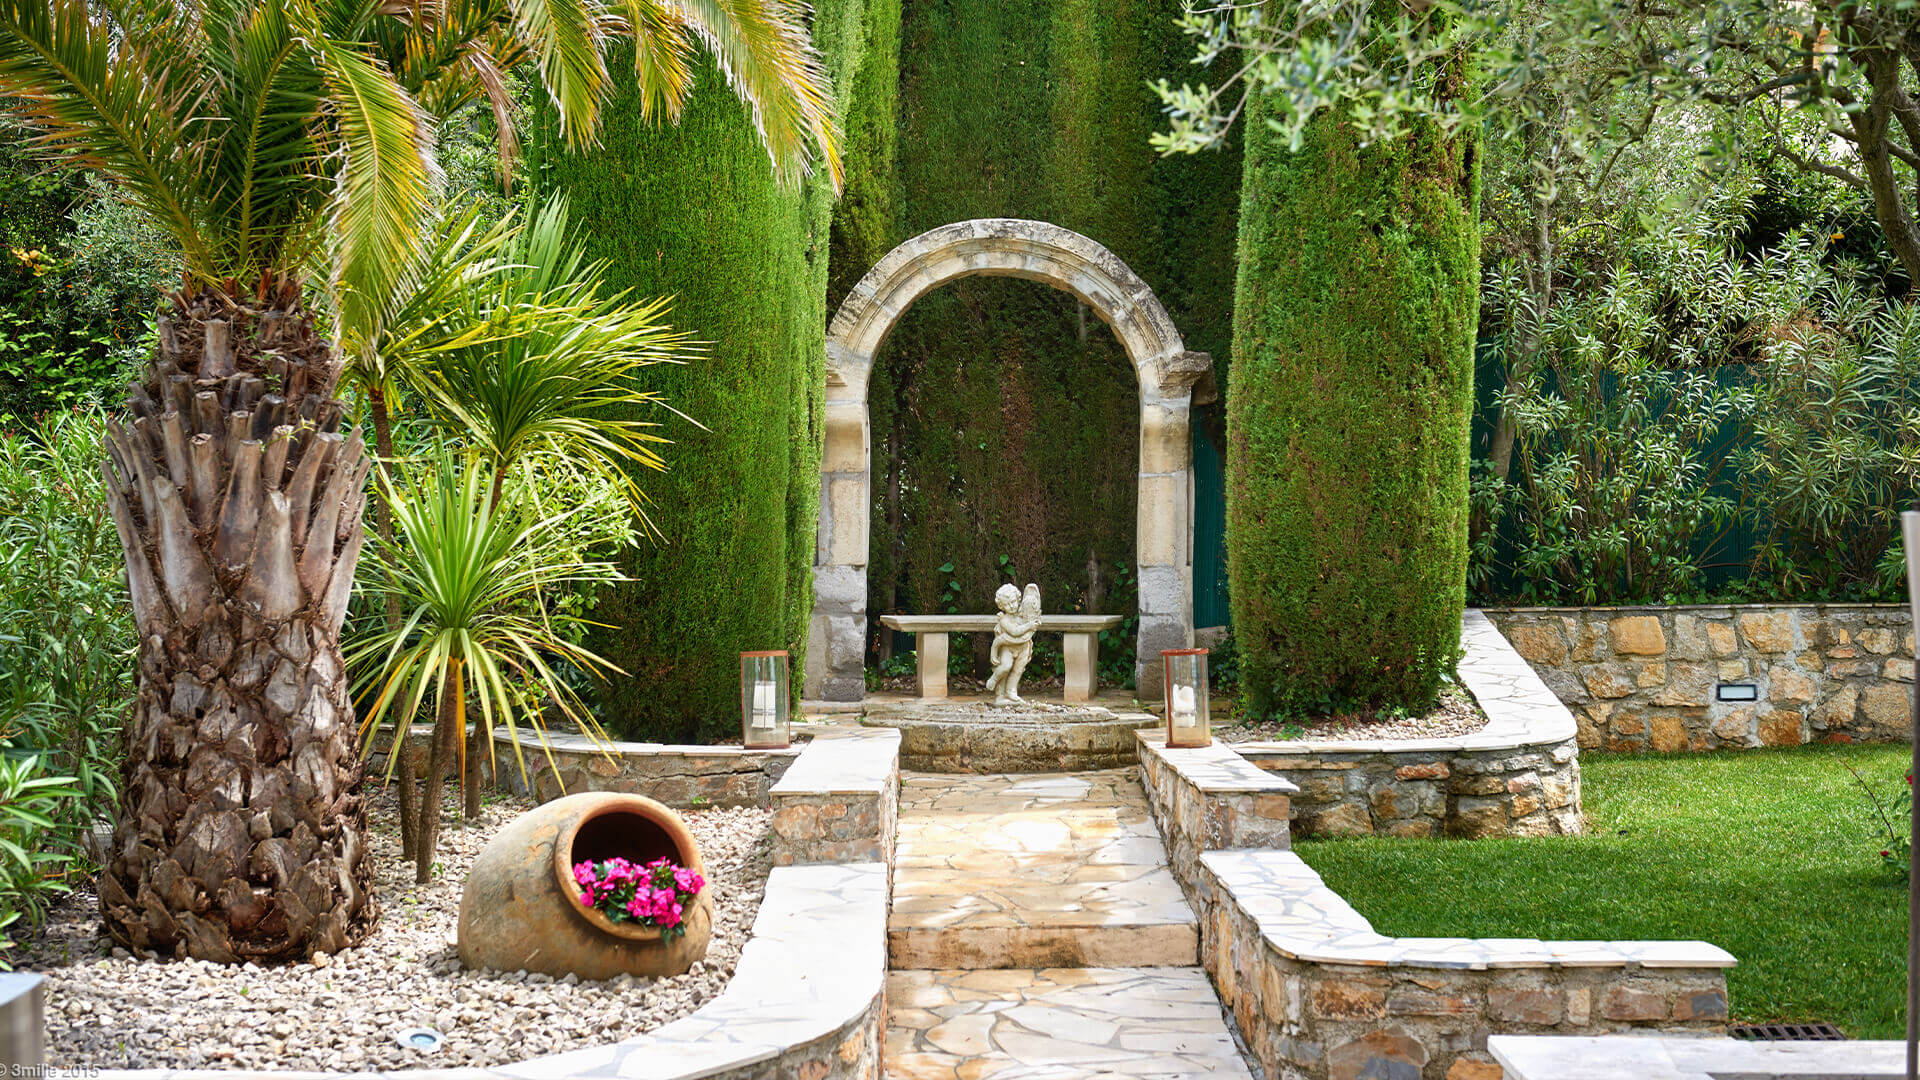 Bastide in Mougins garden with statue